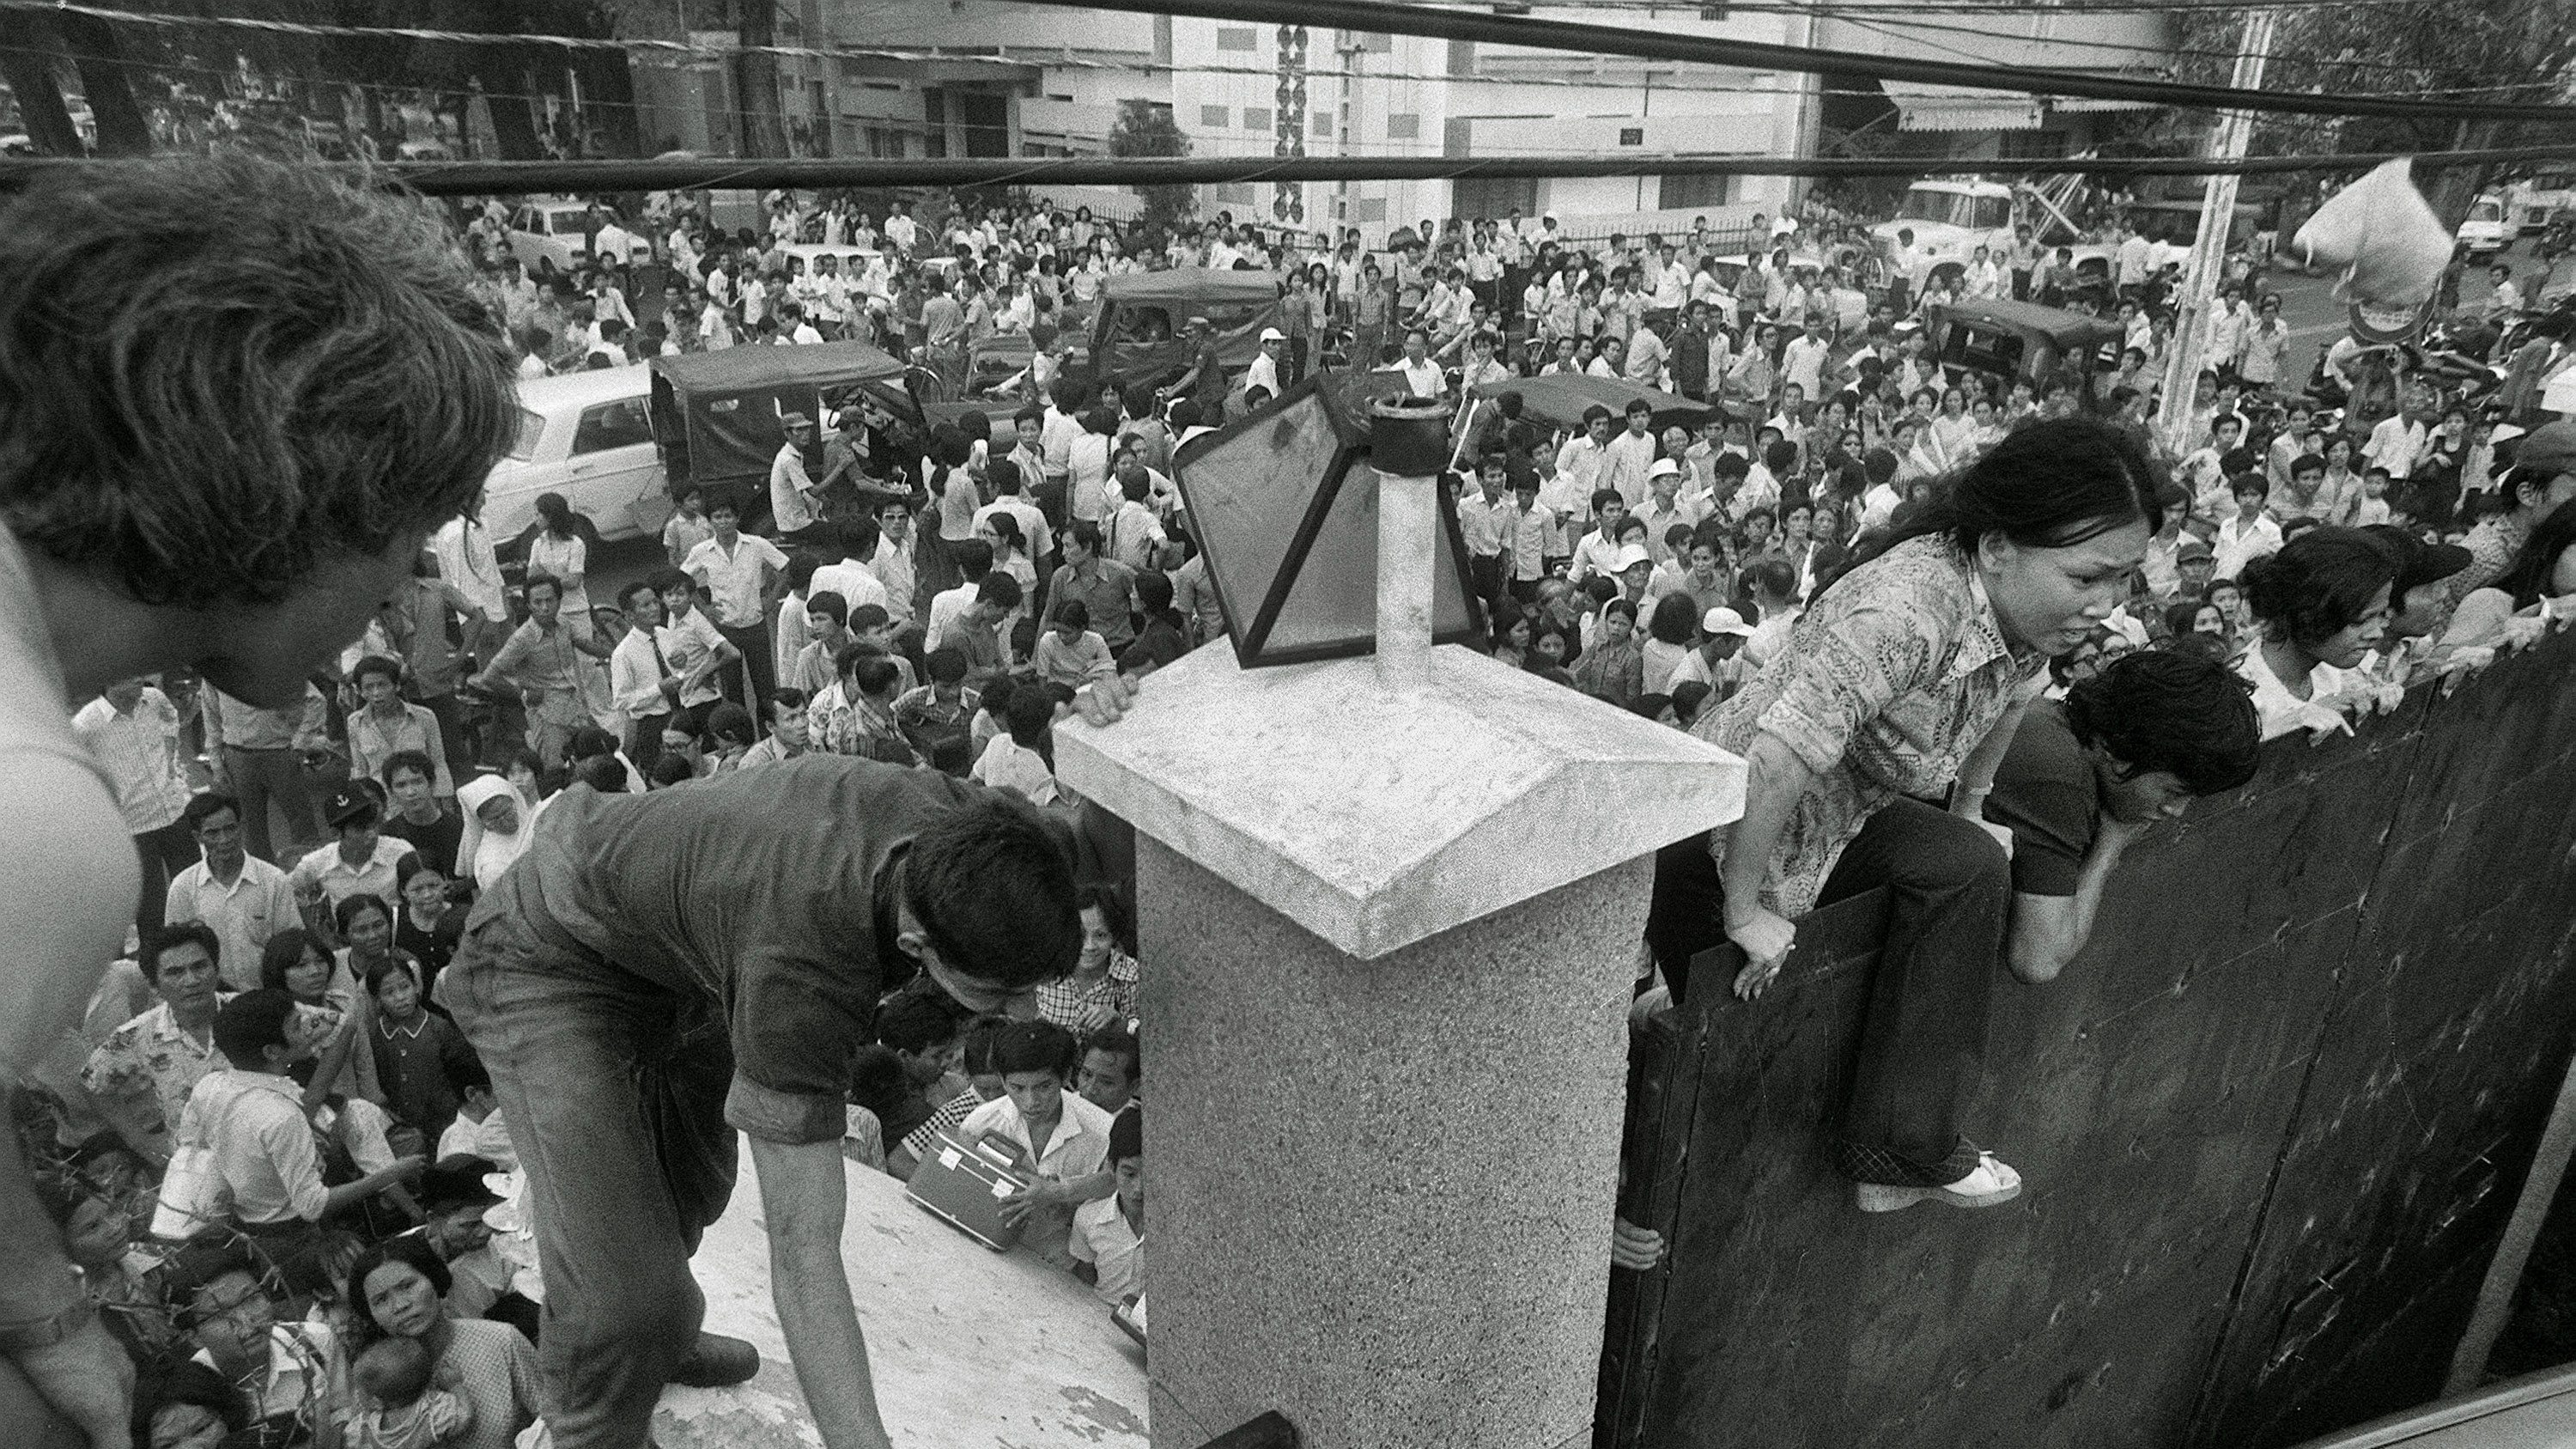 FILE - In this April 29, 1975 file photo, South Vietnamese civilians scale the 14-foot wall of the U.S. embassy in Saigon, trying to reach evacuation helicopters as the last Americans depart from Vietnam. (AP Photo/File)